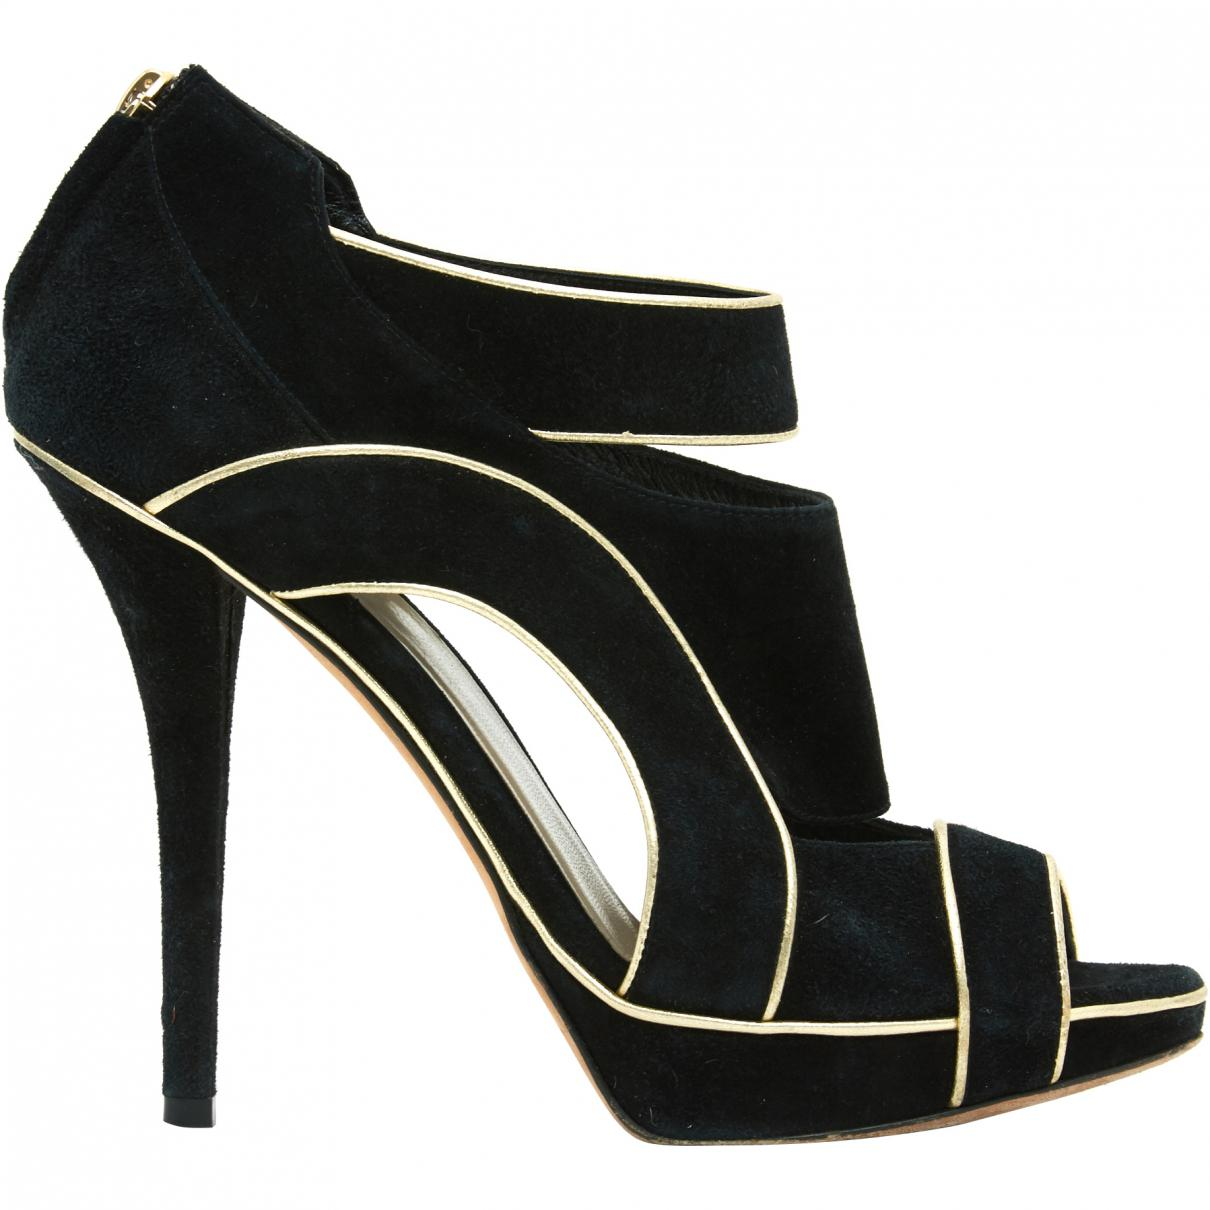 Pre-owned - Heels Dior atrY0yi